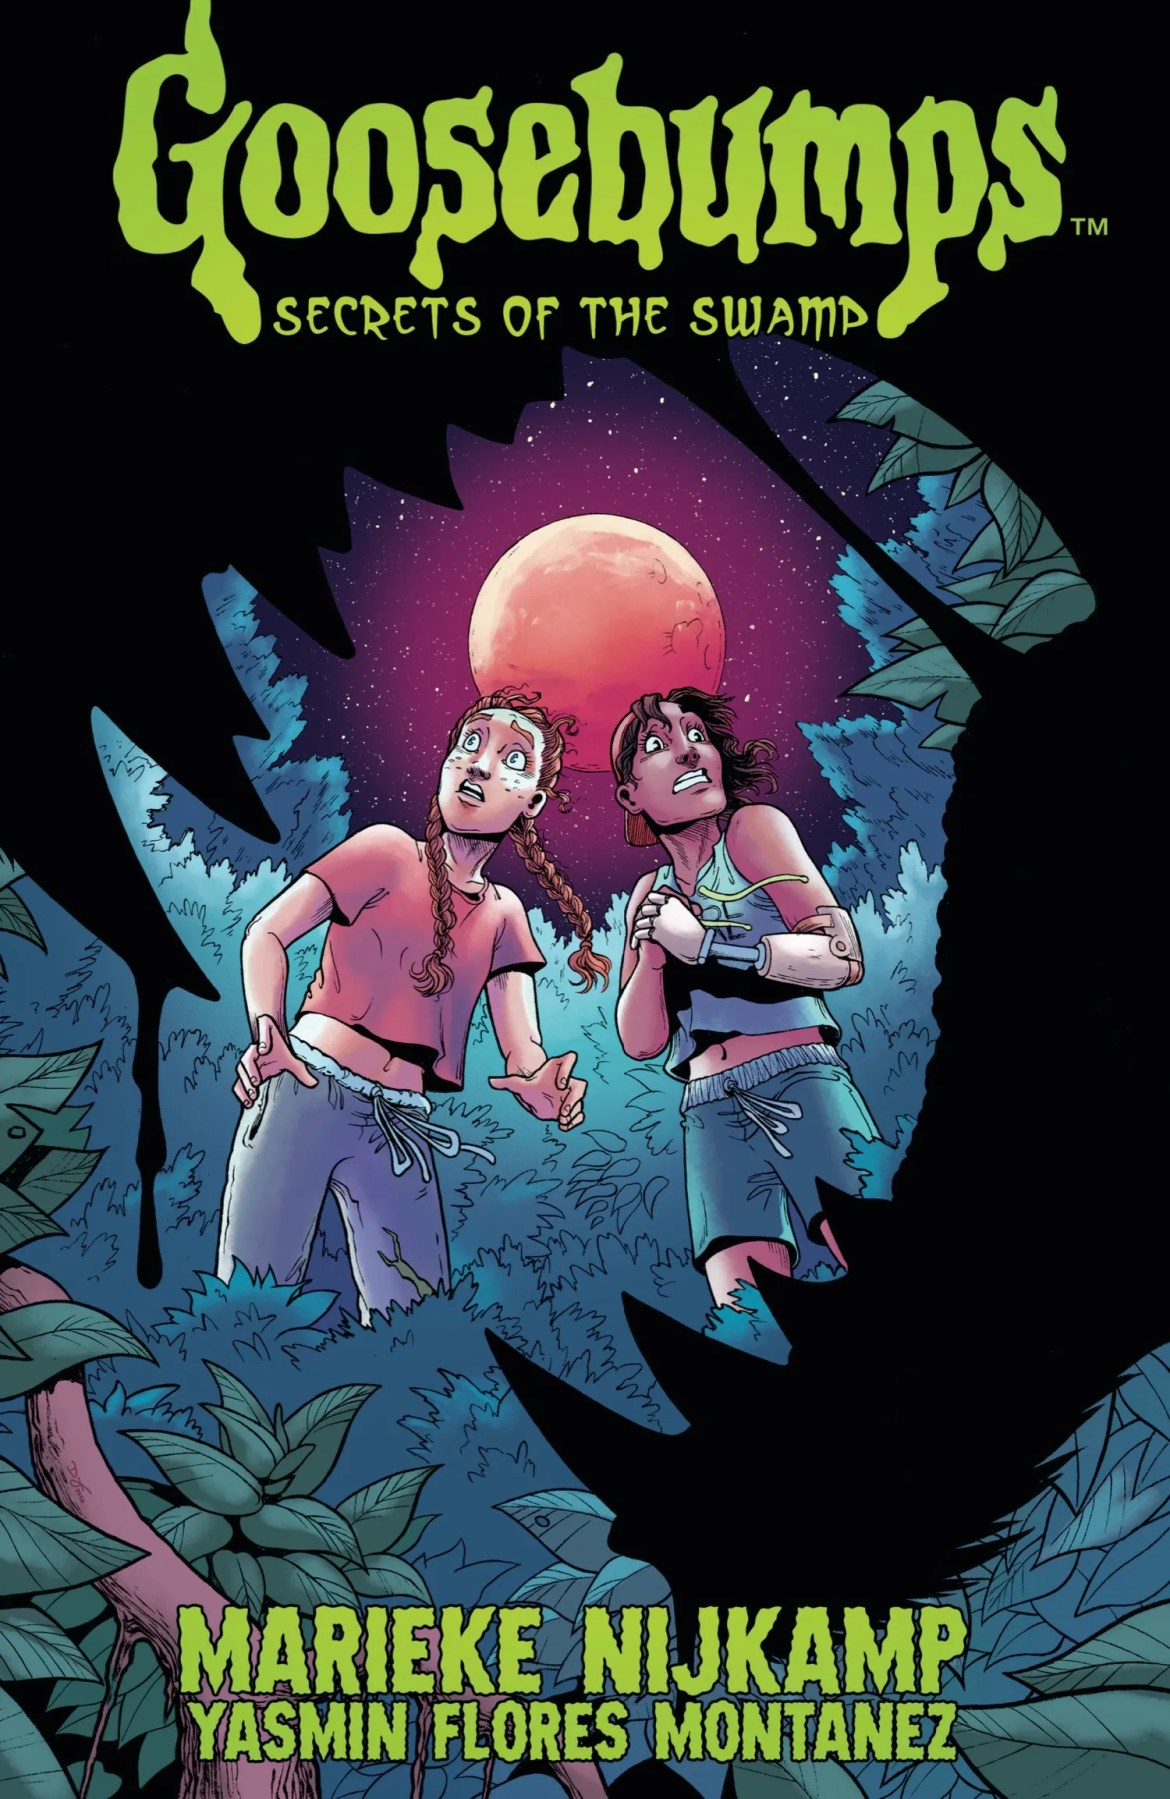 35390404-7cef-4f1f-823c-c6cbe923f70f GOOSEBUMPS SECRET OF THE SWAMP gets collected by IDW